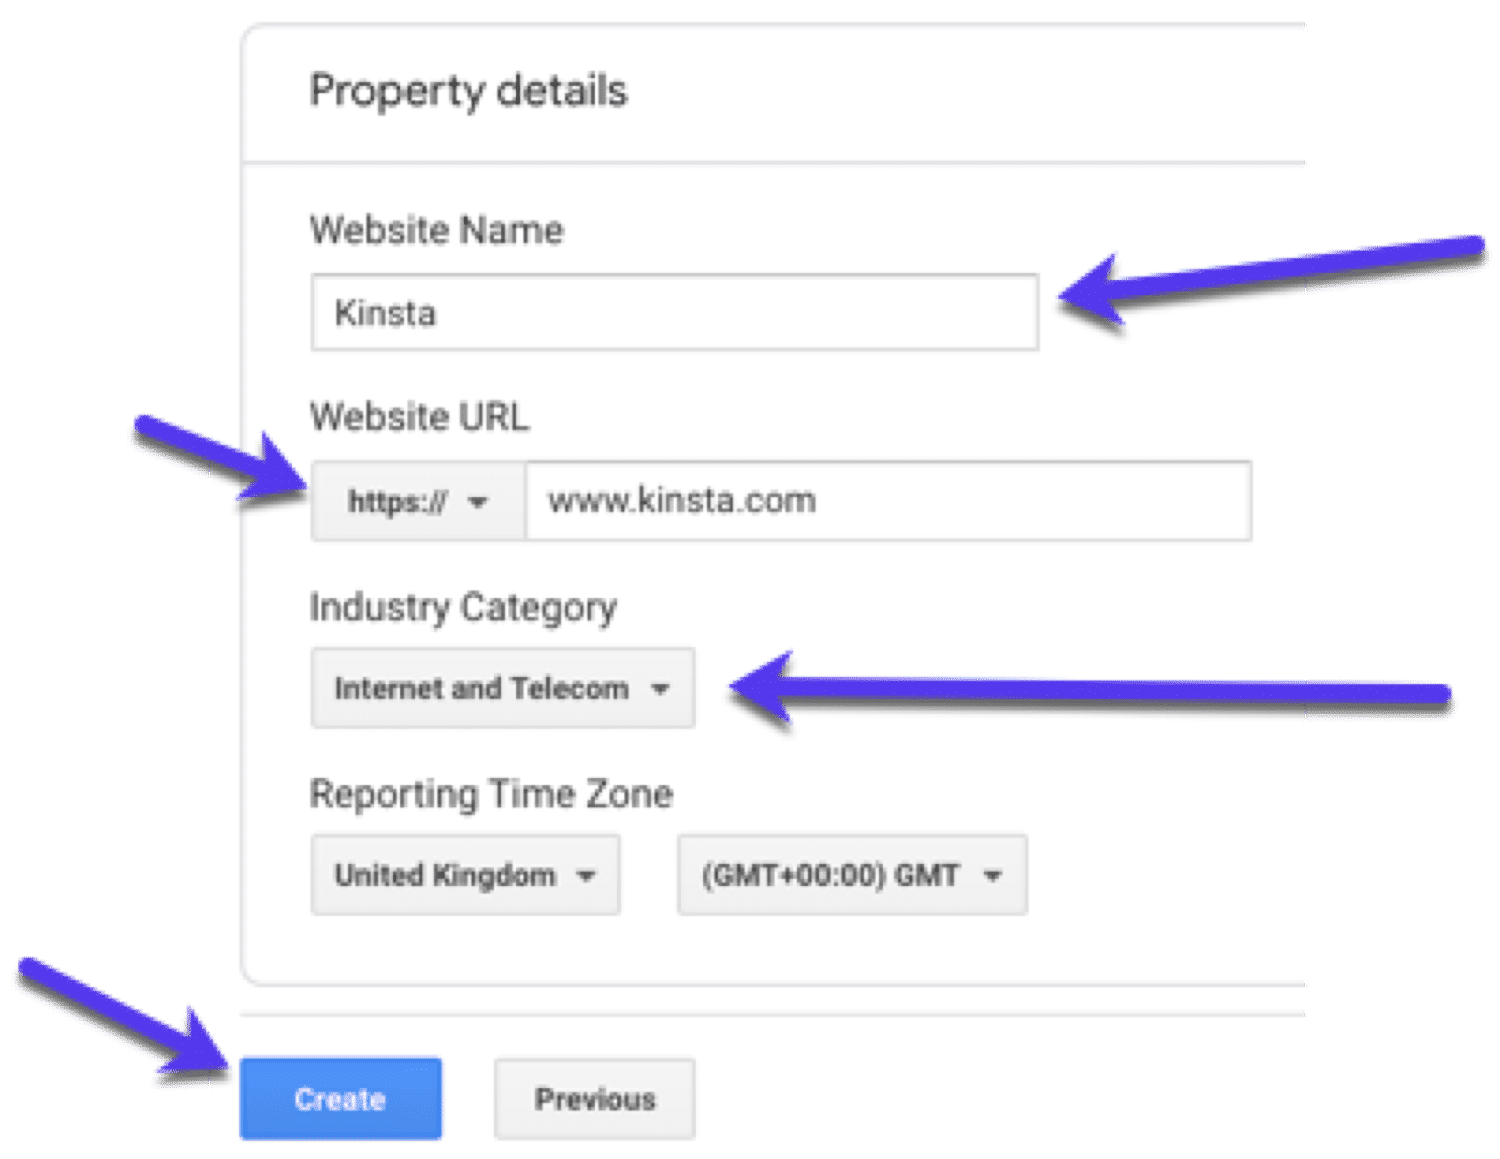 Propertydetails - voeg informatie toe over je site in Google Analytics